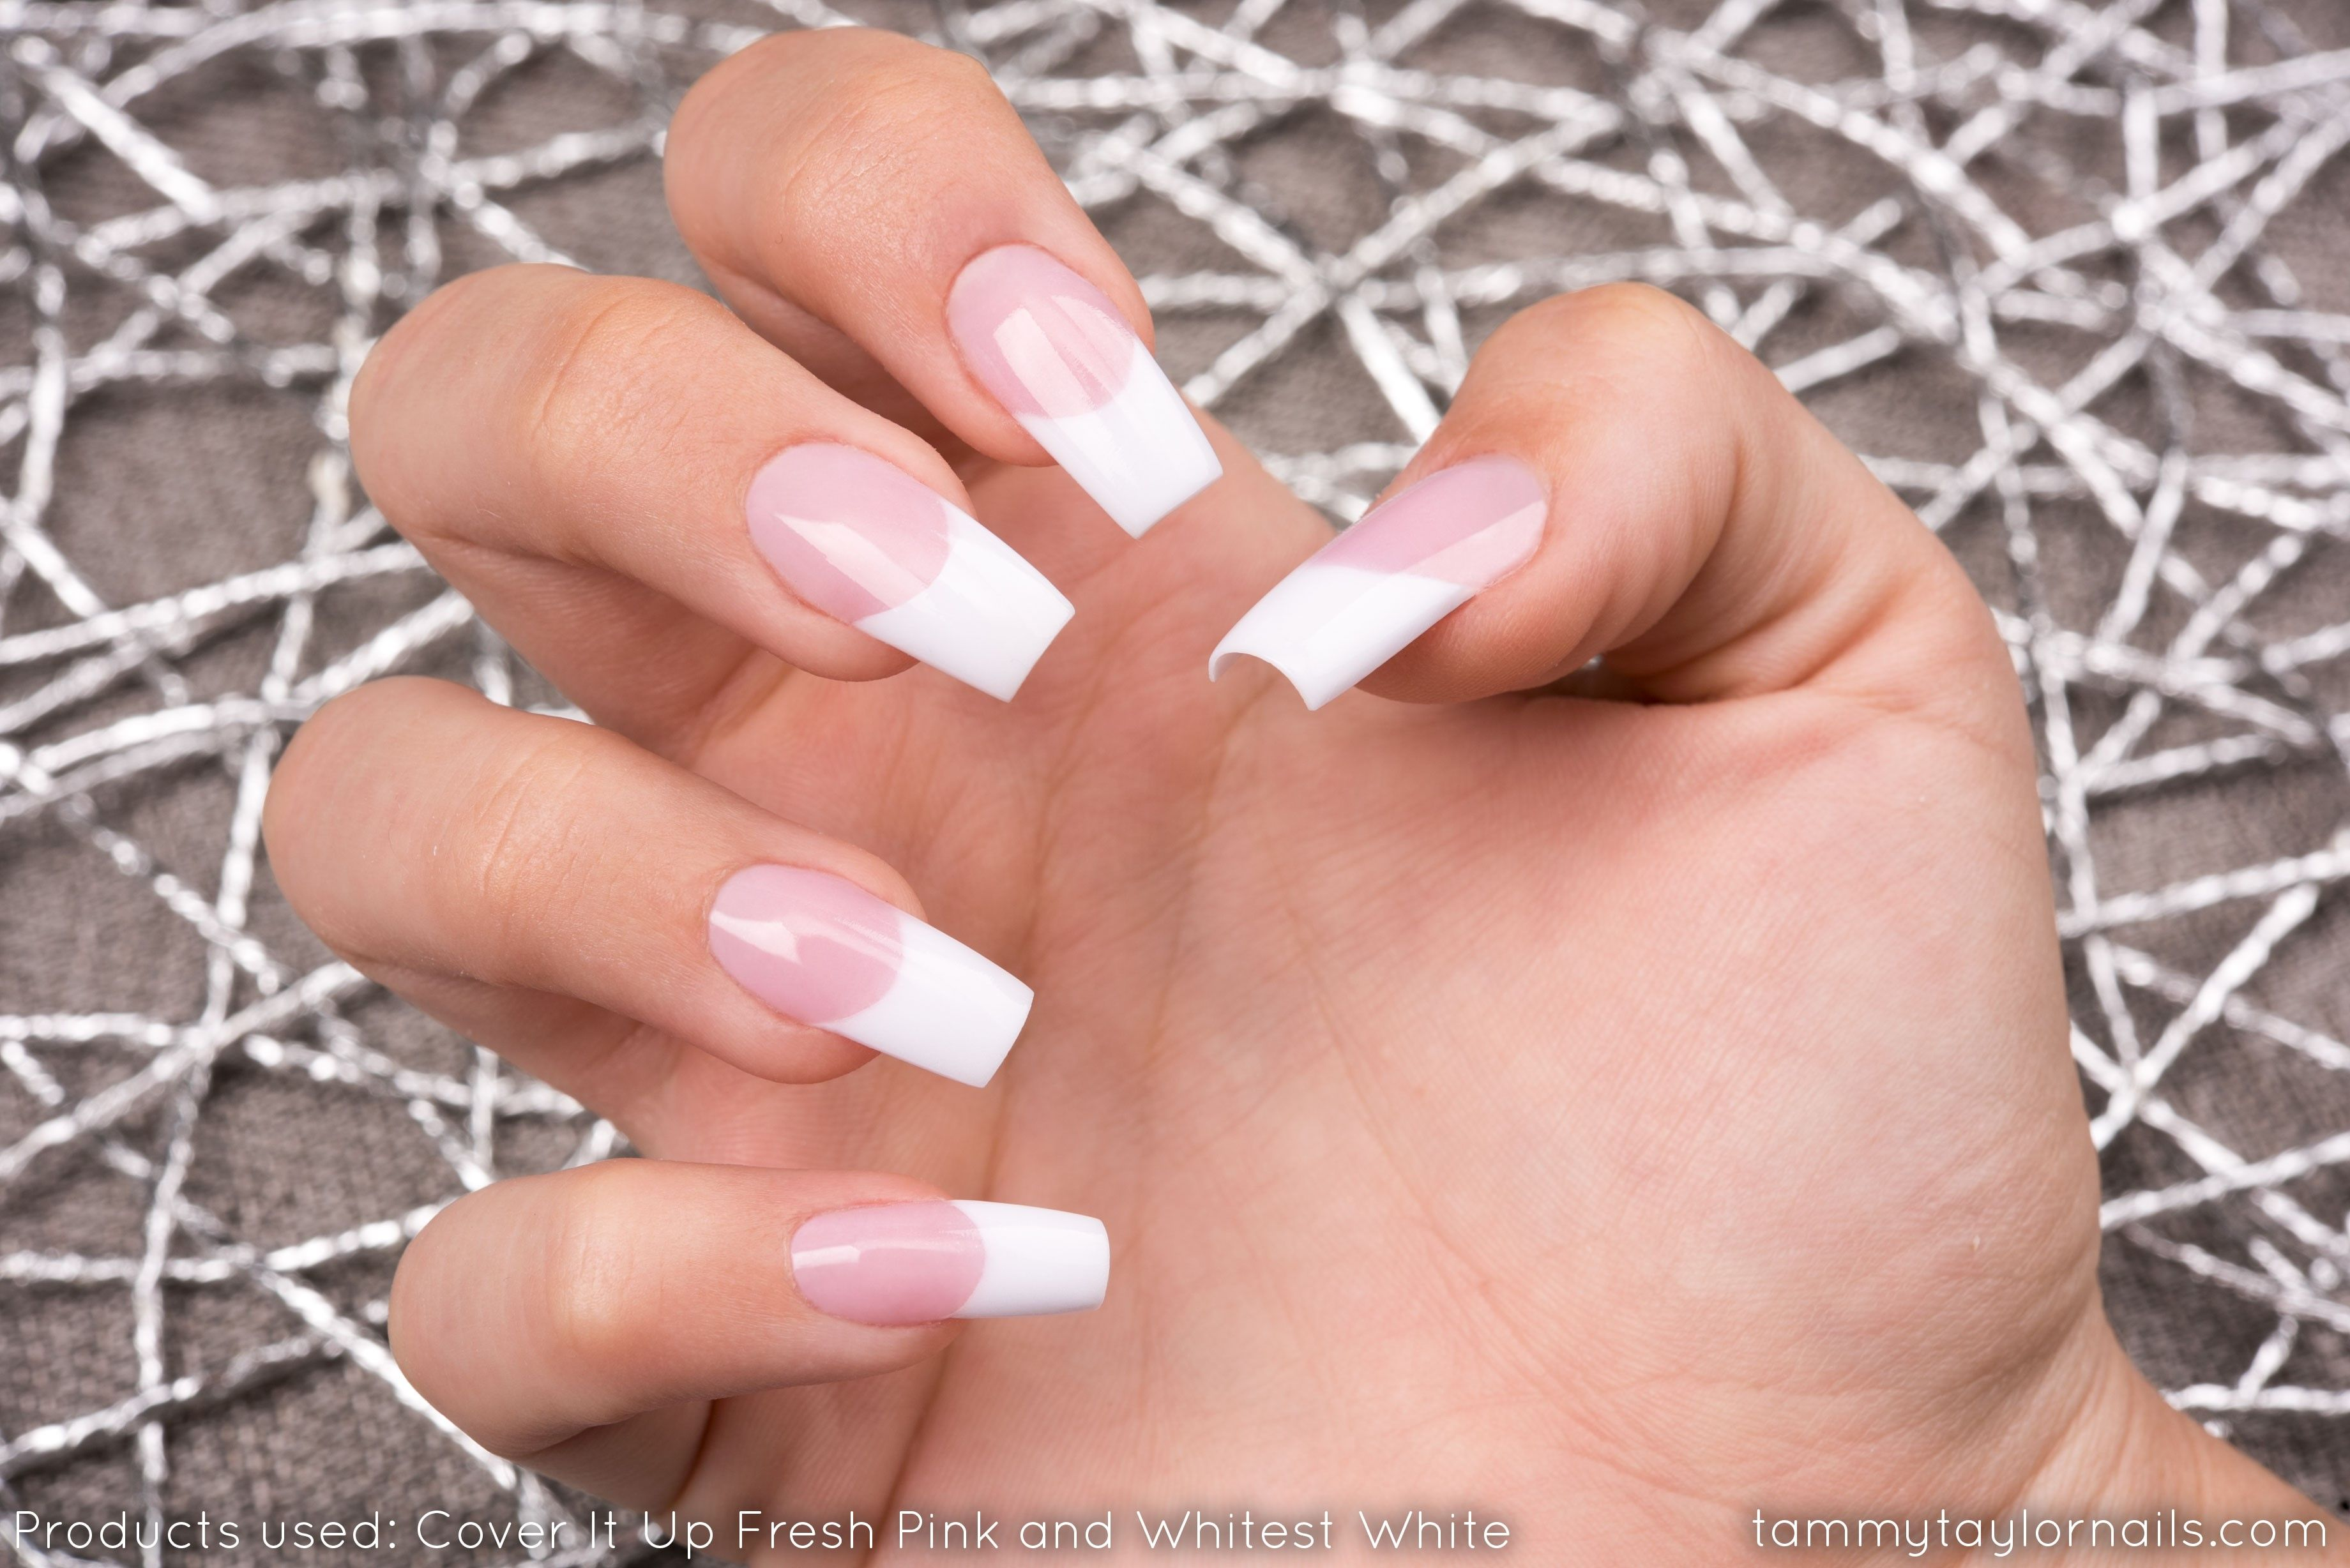 Pink And Whites By Tammy Taylor On A Nail Biter Tammy Taylor Nails Sculptured Nails Nails